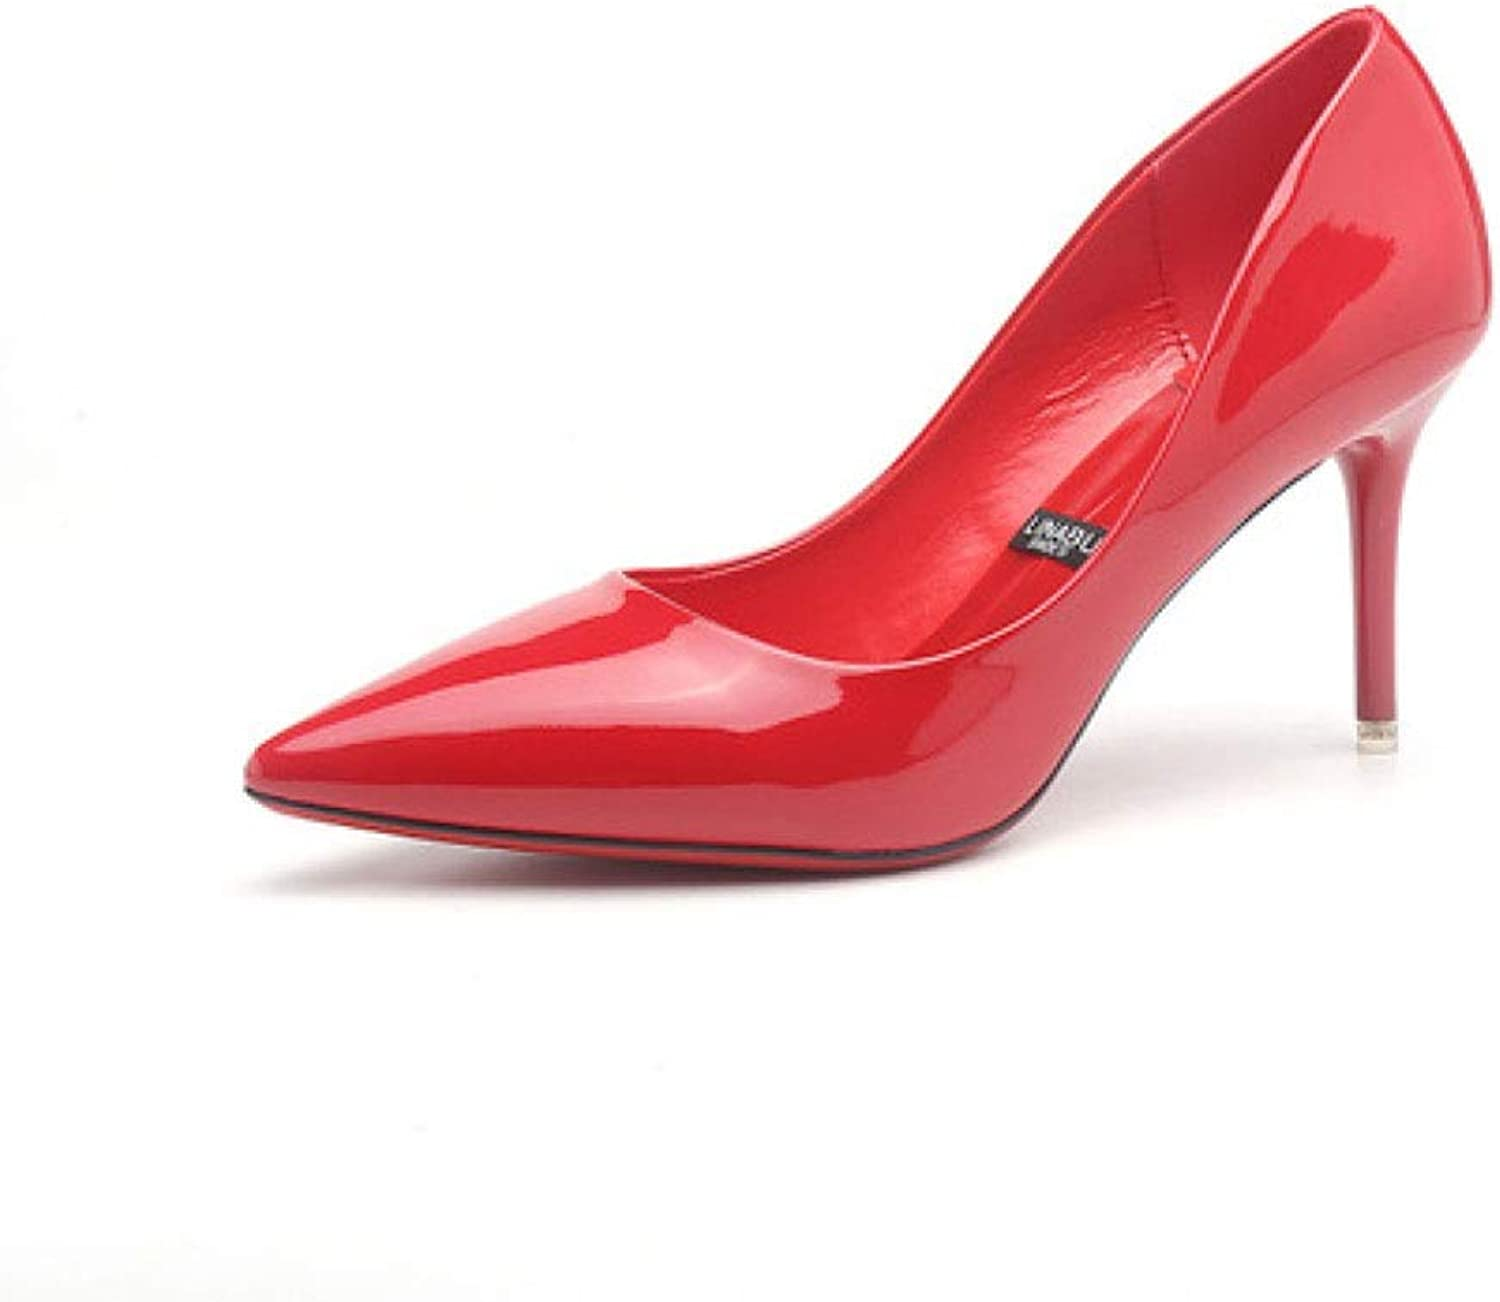 KTYXDE High Heels Temperament Sexy Work shoes High Heels Wedding shoes High Heels 8CM 5 colors Women's shoes (color   Red, Size   EU36 UK3.5 CN35)